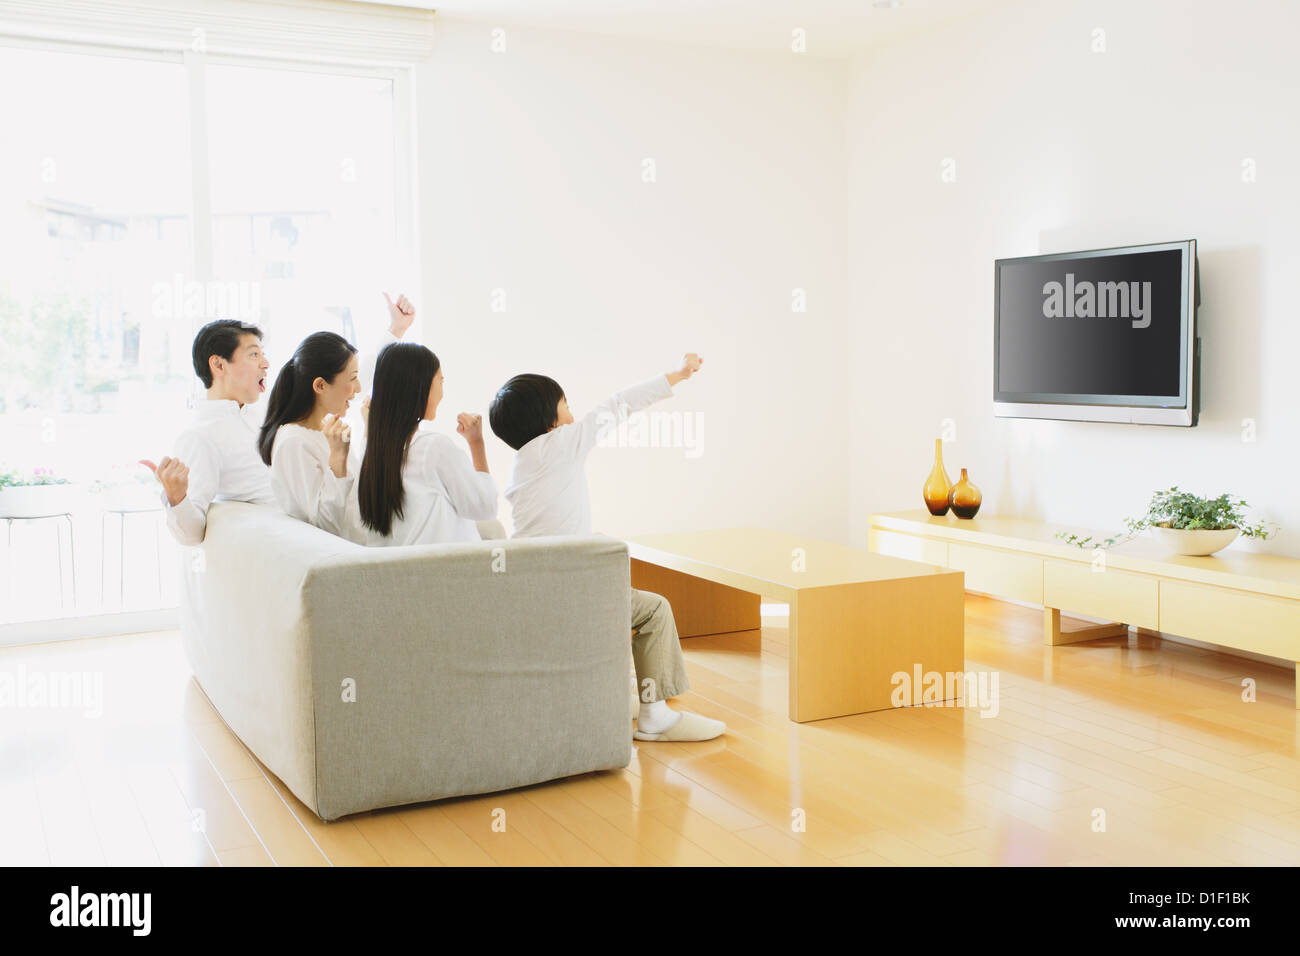 Living Room With Tv And People living room with tv and people